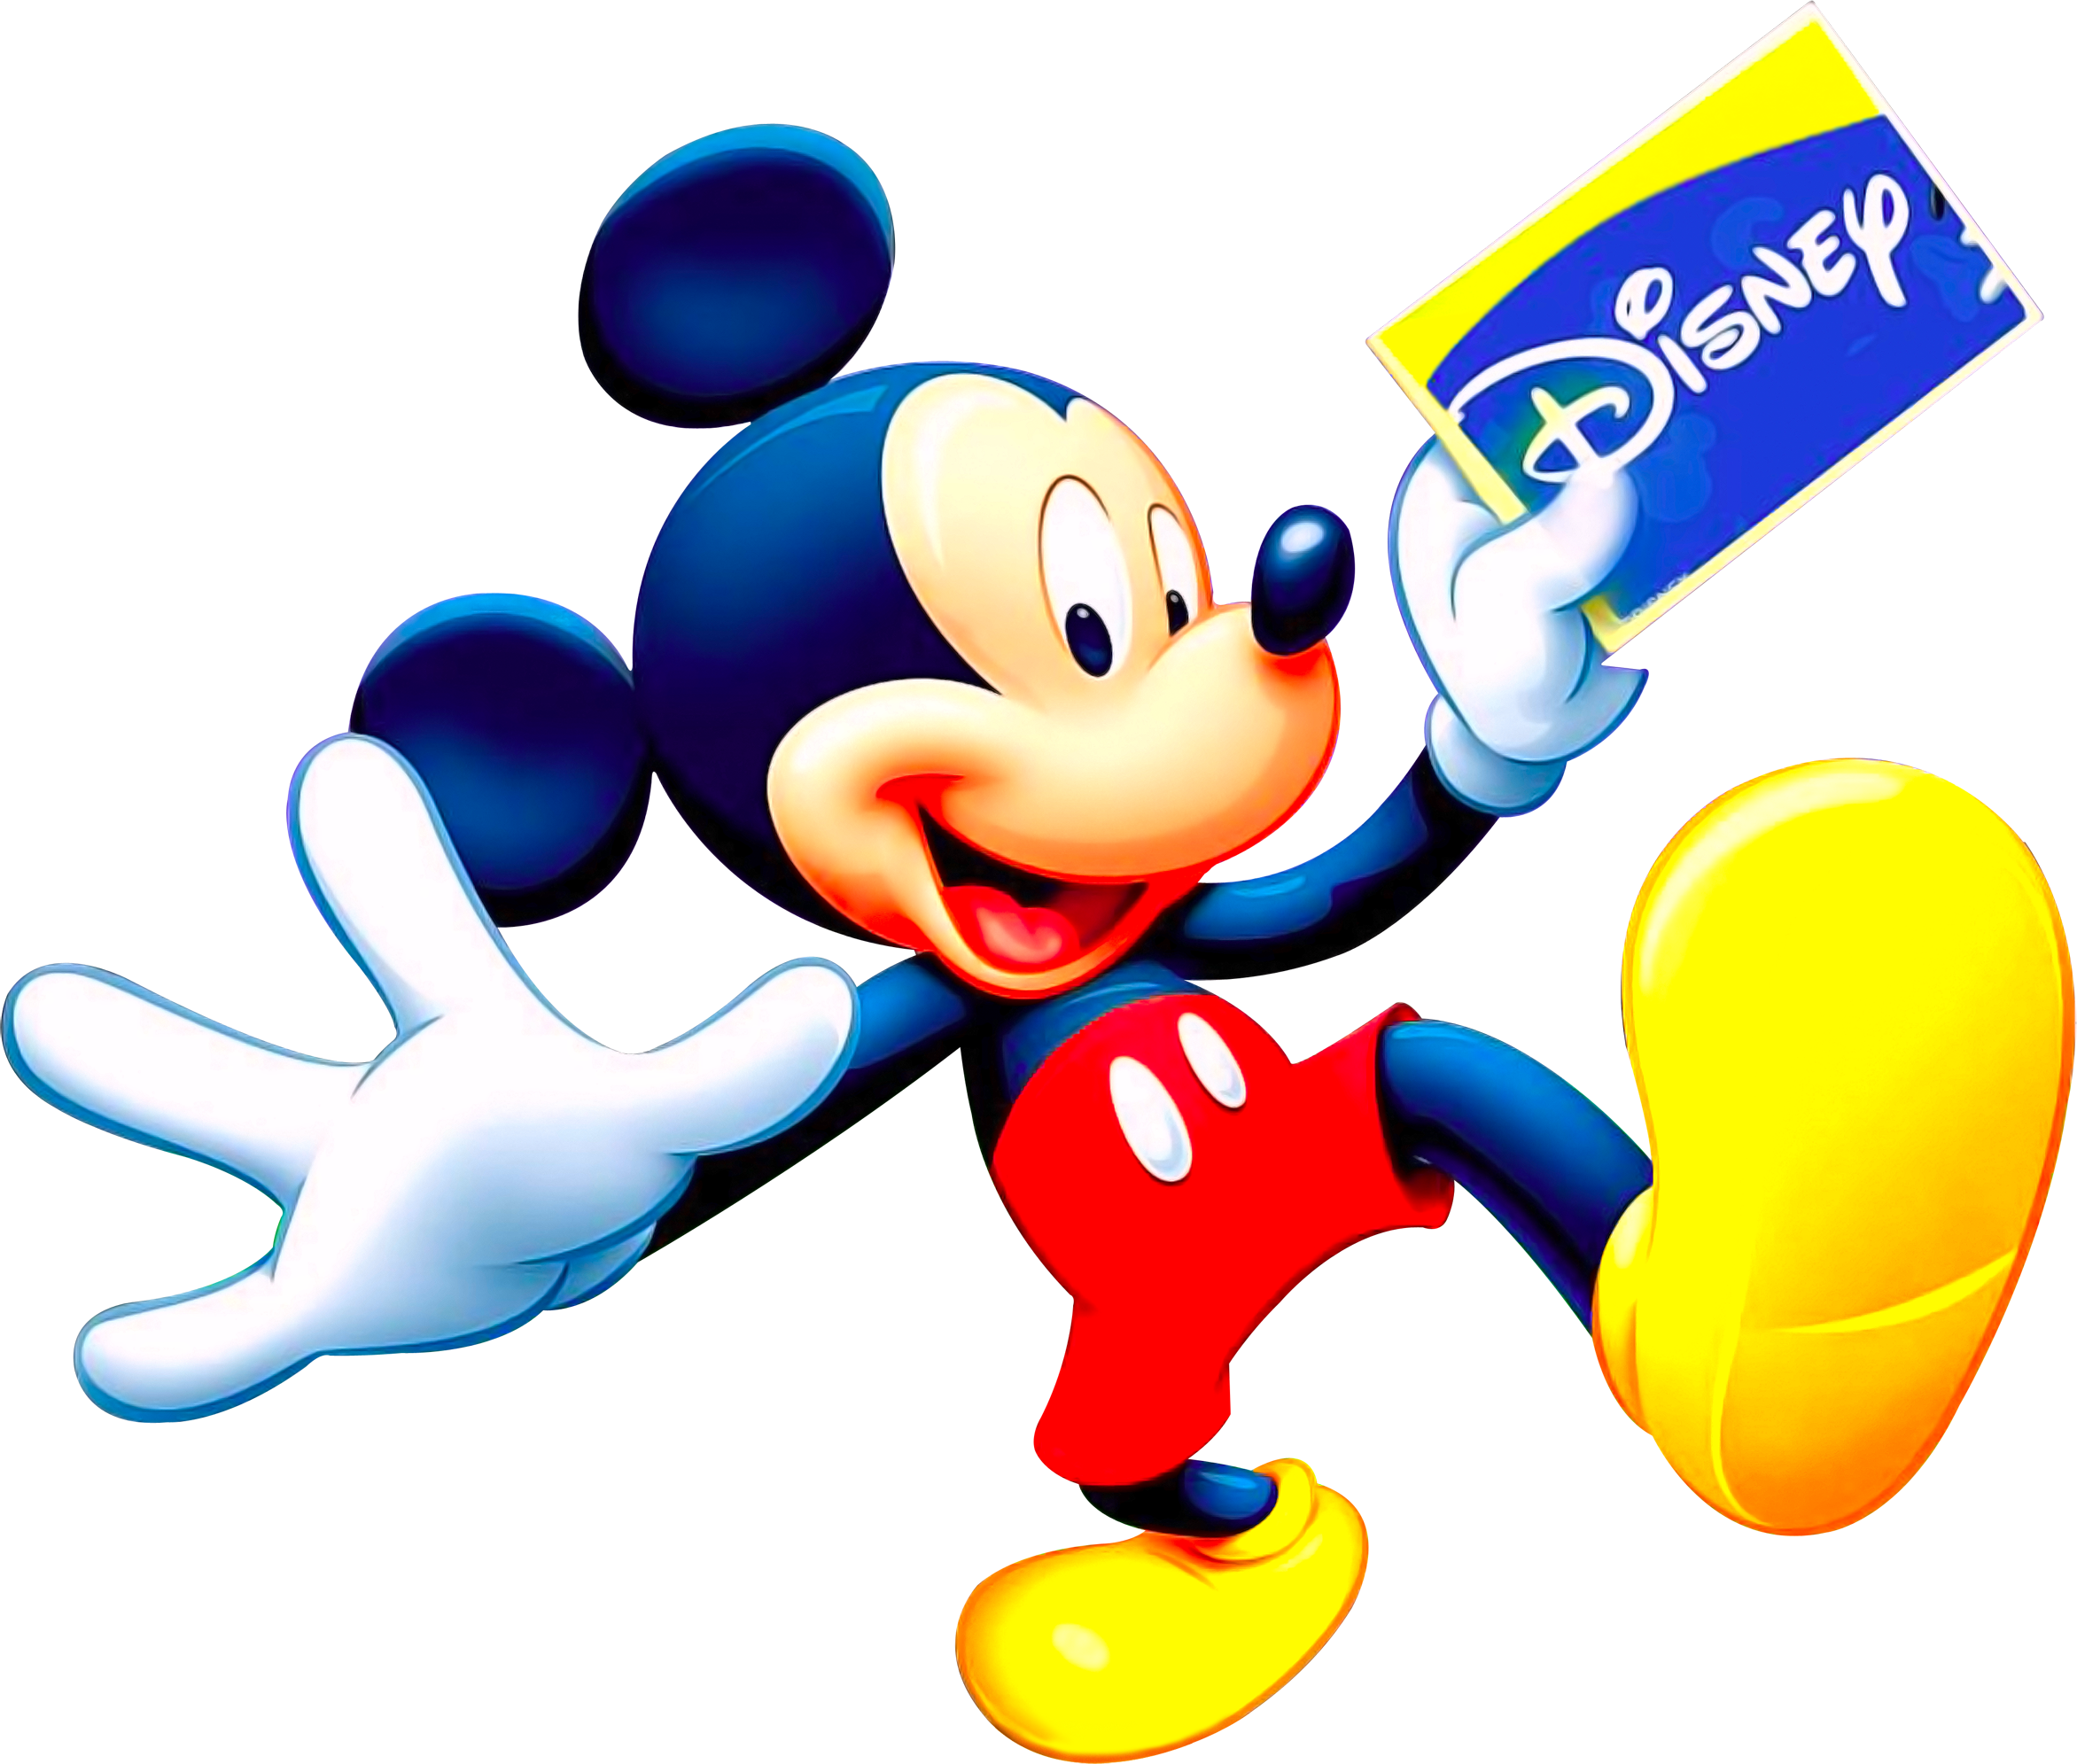 Mickey mouse png hd. Image purepng free transparent